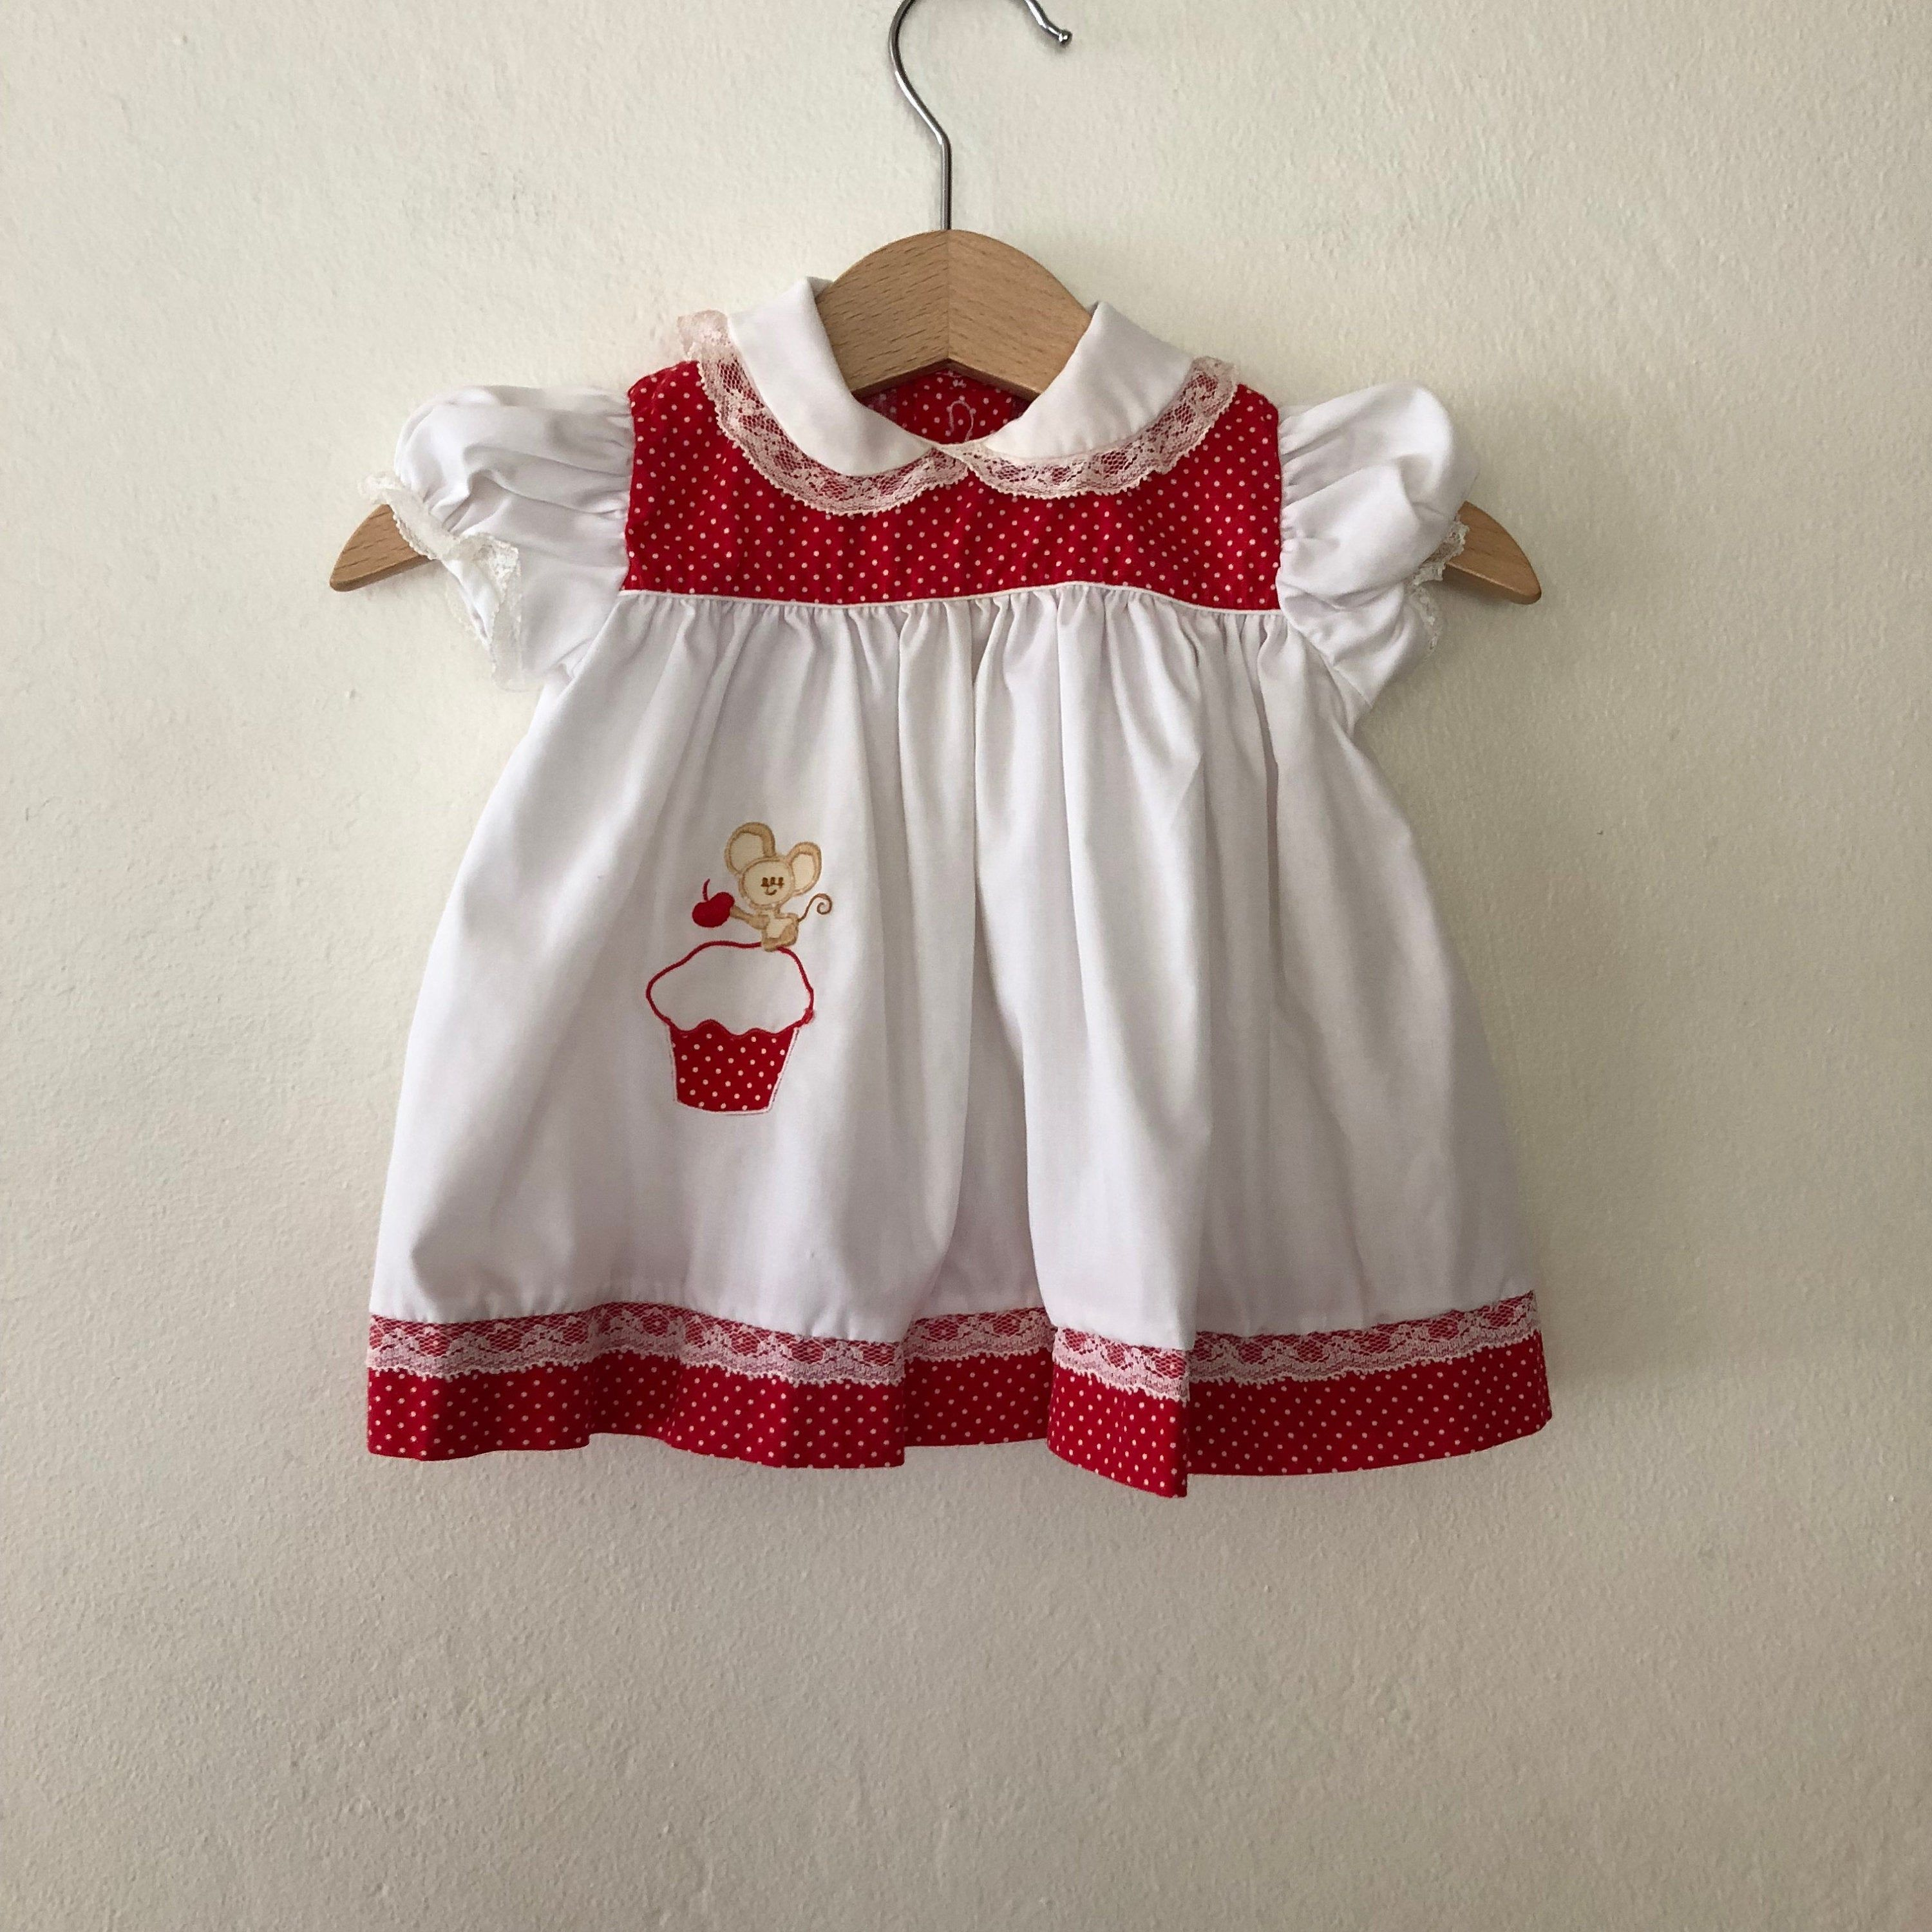 Pink Polka Dot Ruffled Dress 3-6 Months Vtg Baby Girls Embroidered Swiss Dot Pinafore Dress with Appliqued Ducks